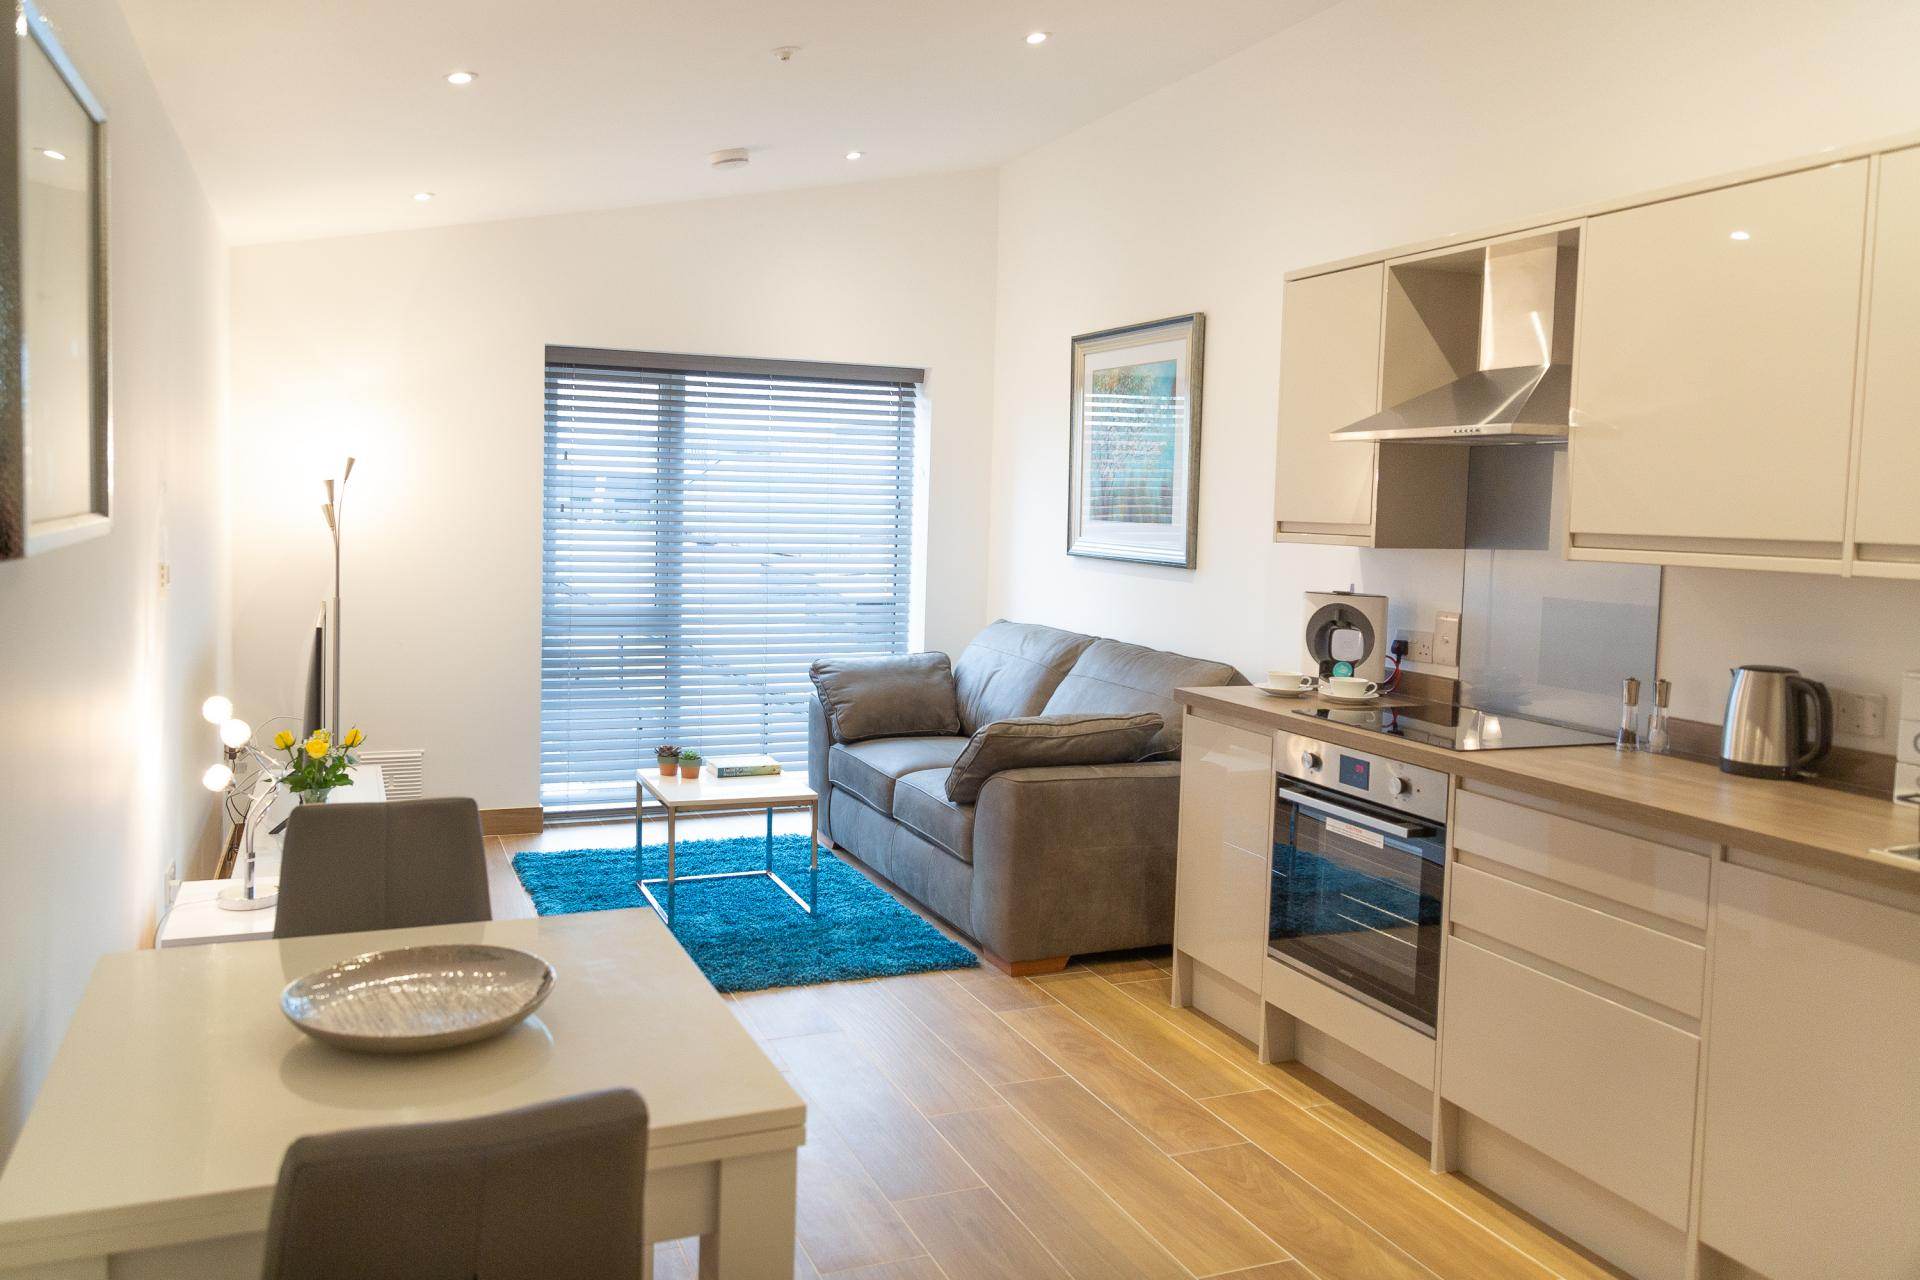 Open plan kitchen at Franklin House Apartments, King's Hedges, Cambridge - Citybase Apartments